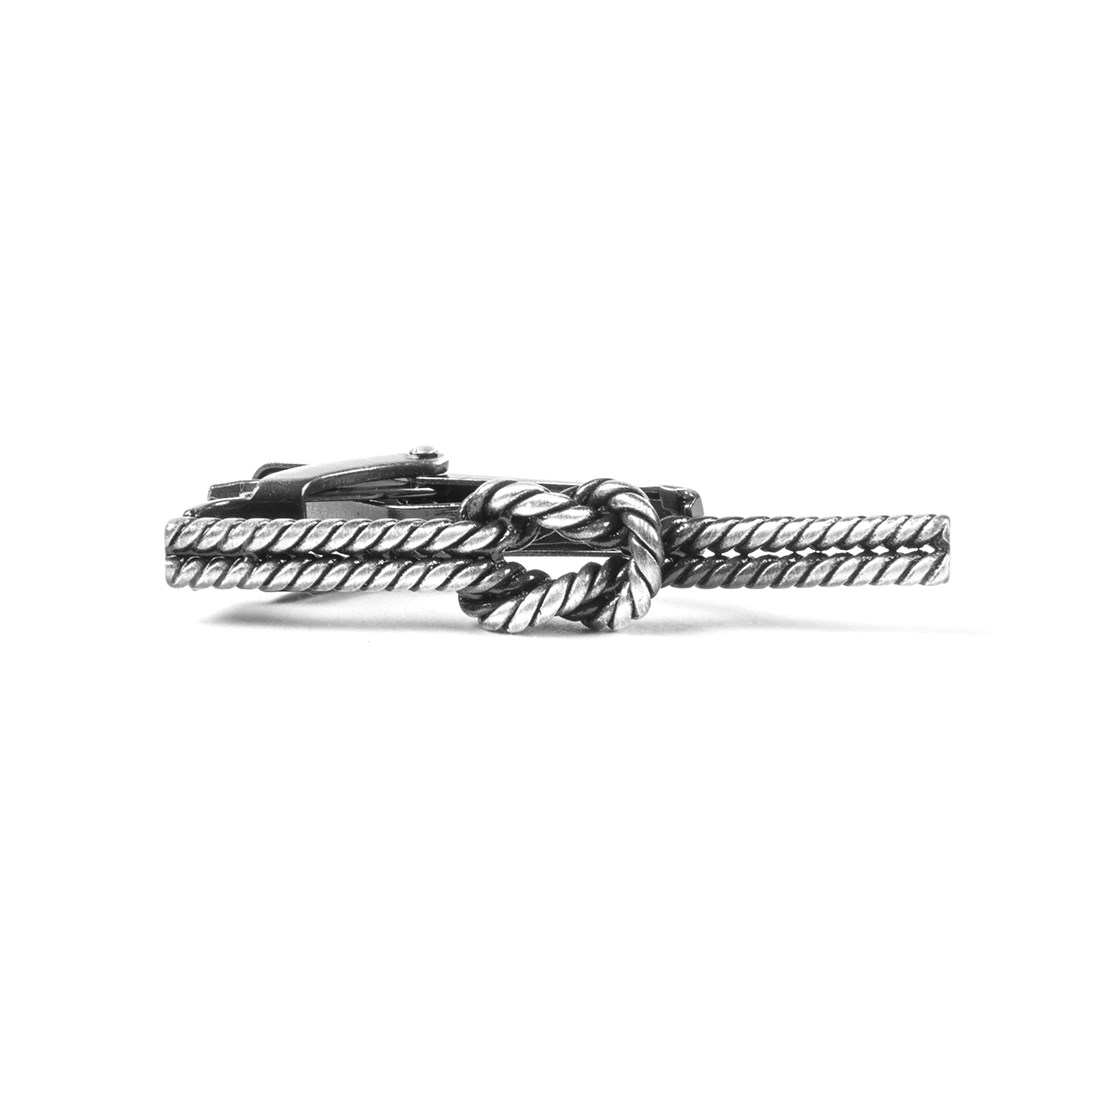 """Sailors Knot - Silver - 1.5"""" - Tie Bars"""